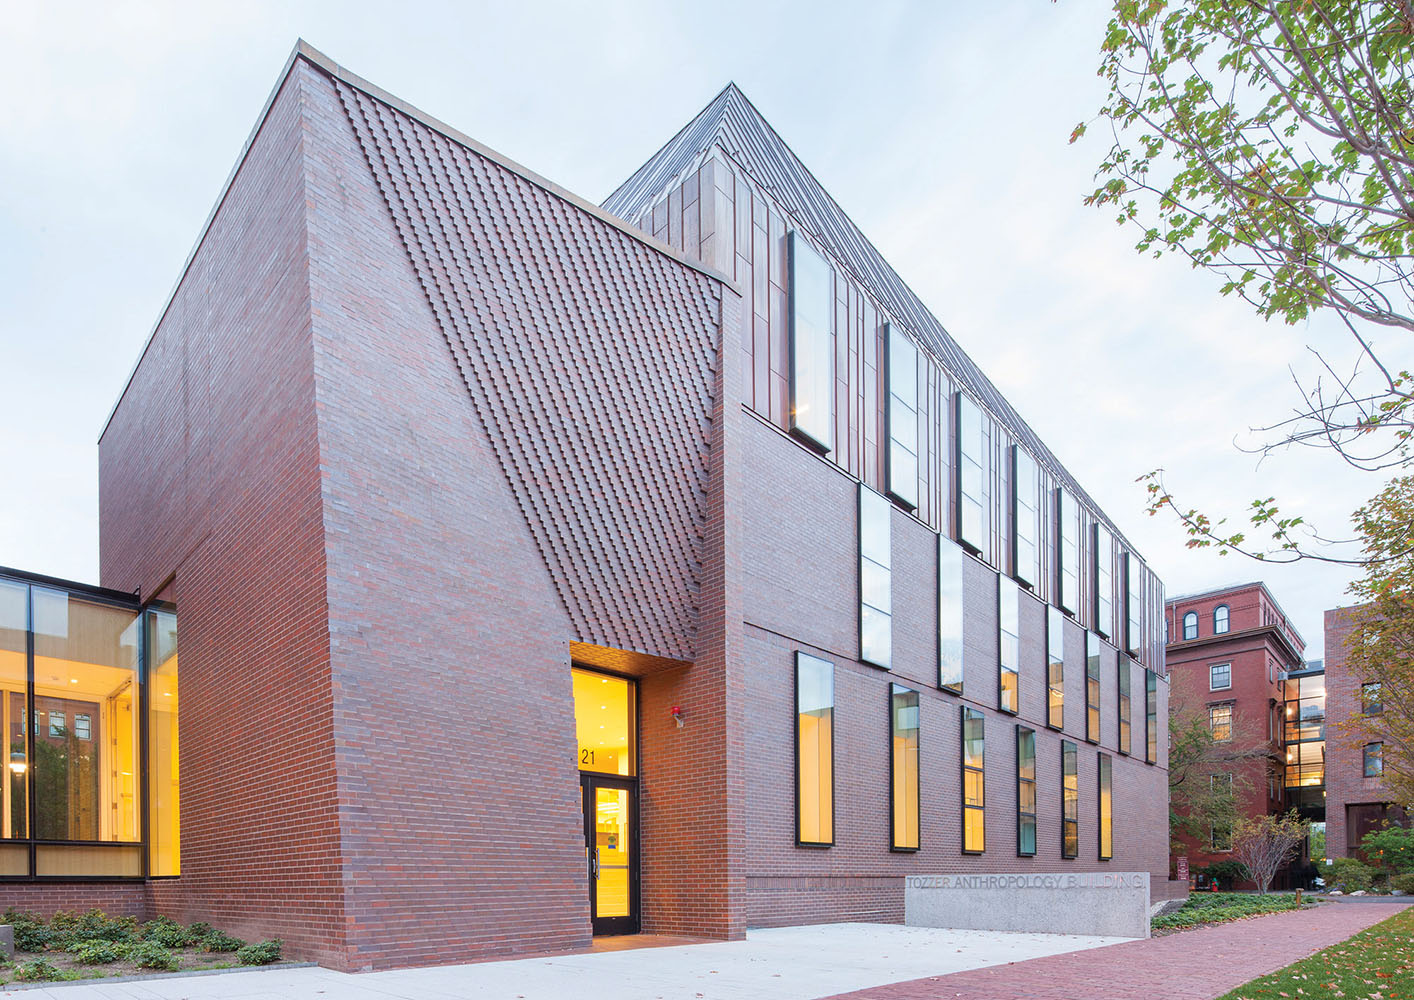 Tozzer Anthropology Building, Harvard University